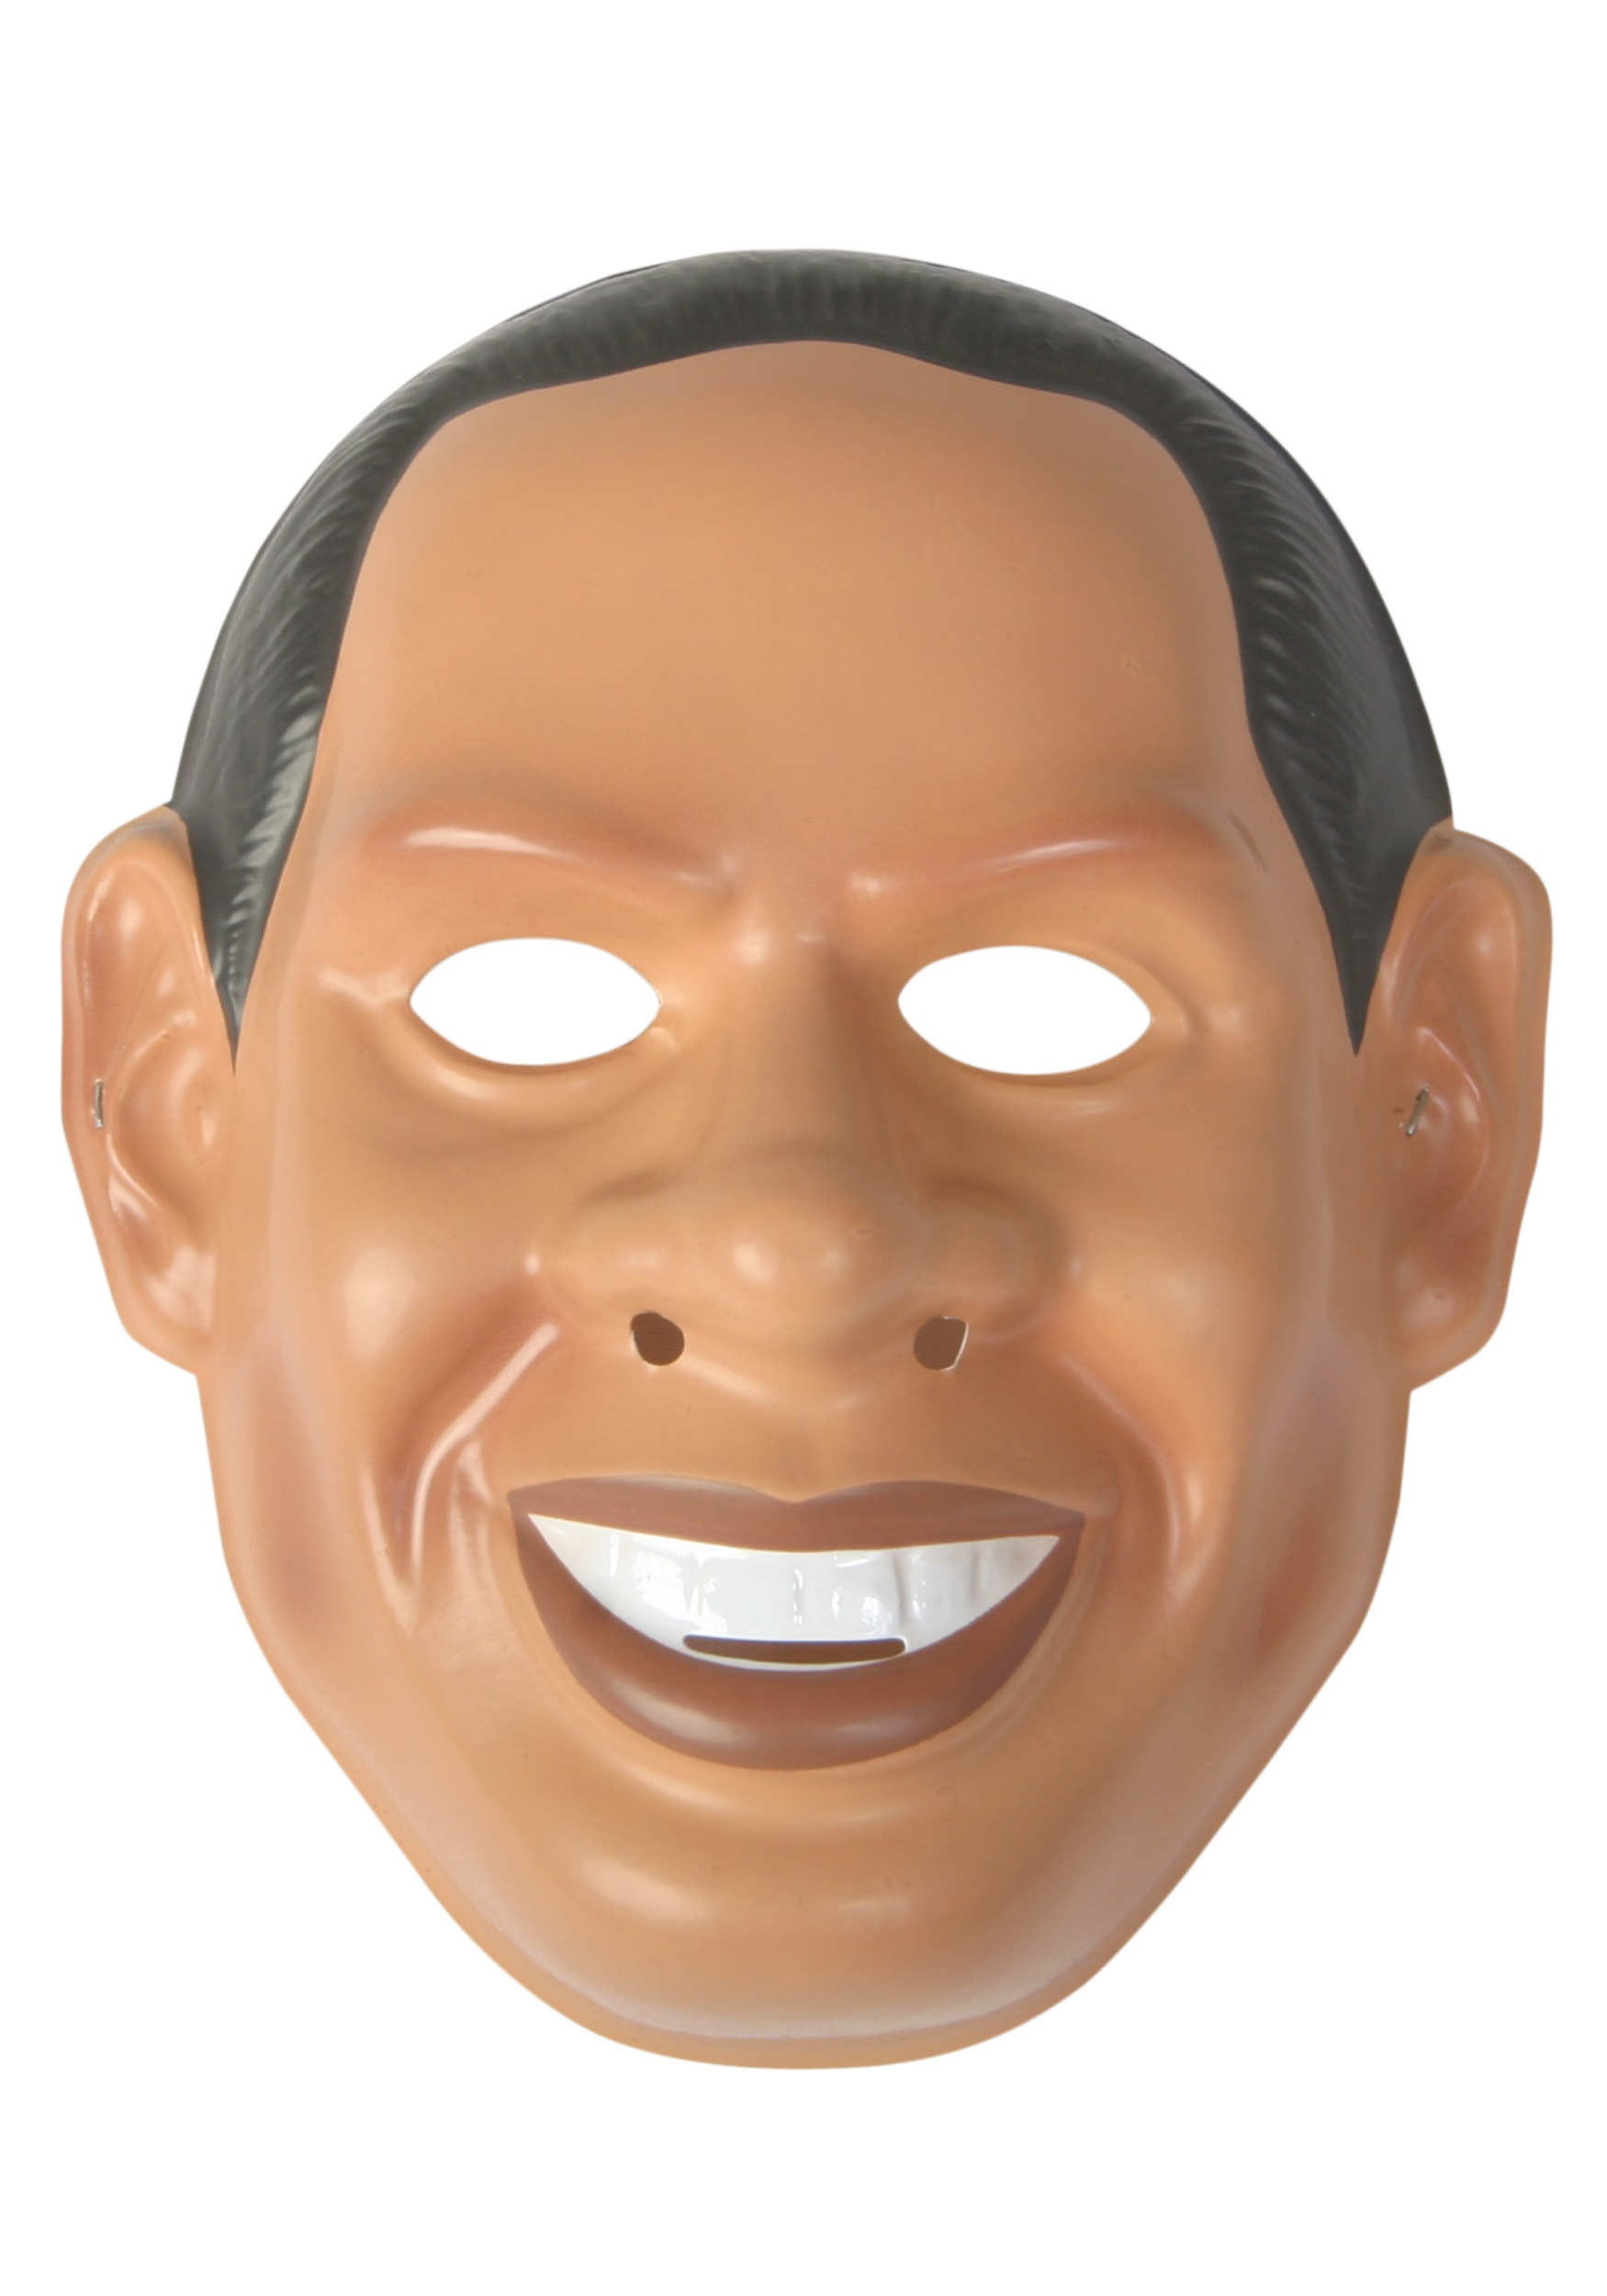 Mr. US President Mask  sc 1 st  Halloween Costume & Mr. US President Mask - Funny President Costume Accessories